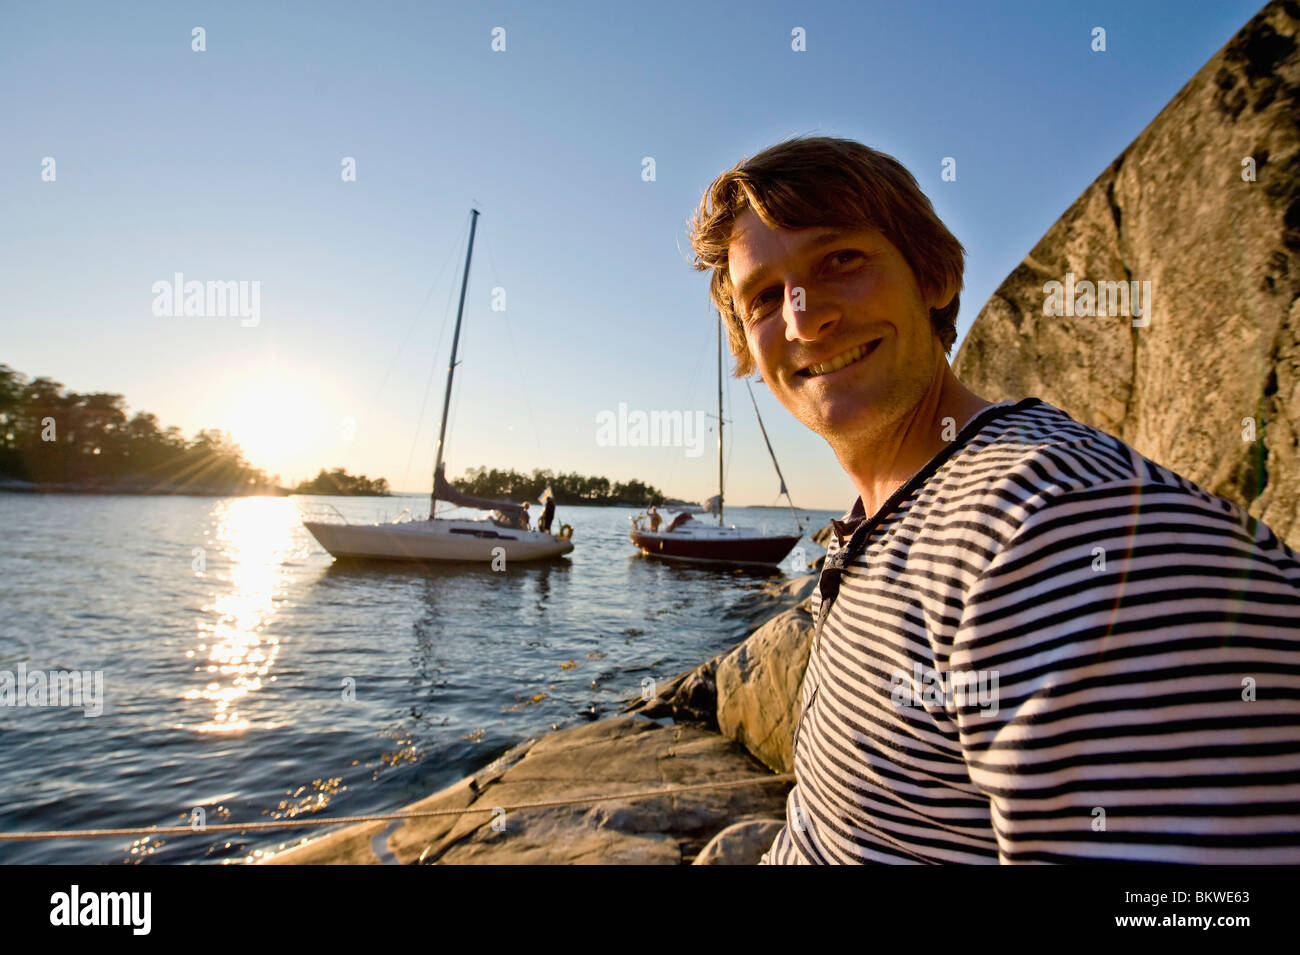 A man sitting in the archipelago - Stock Image